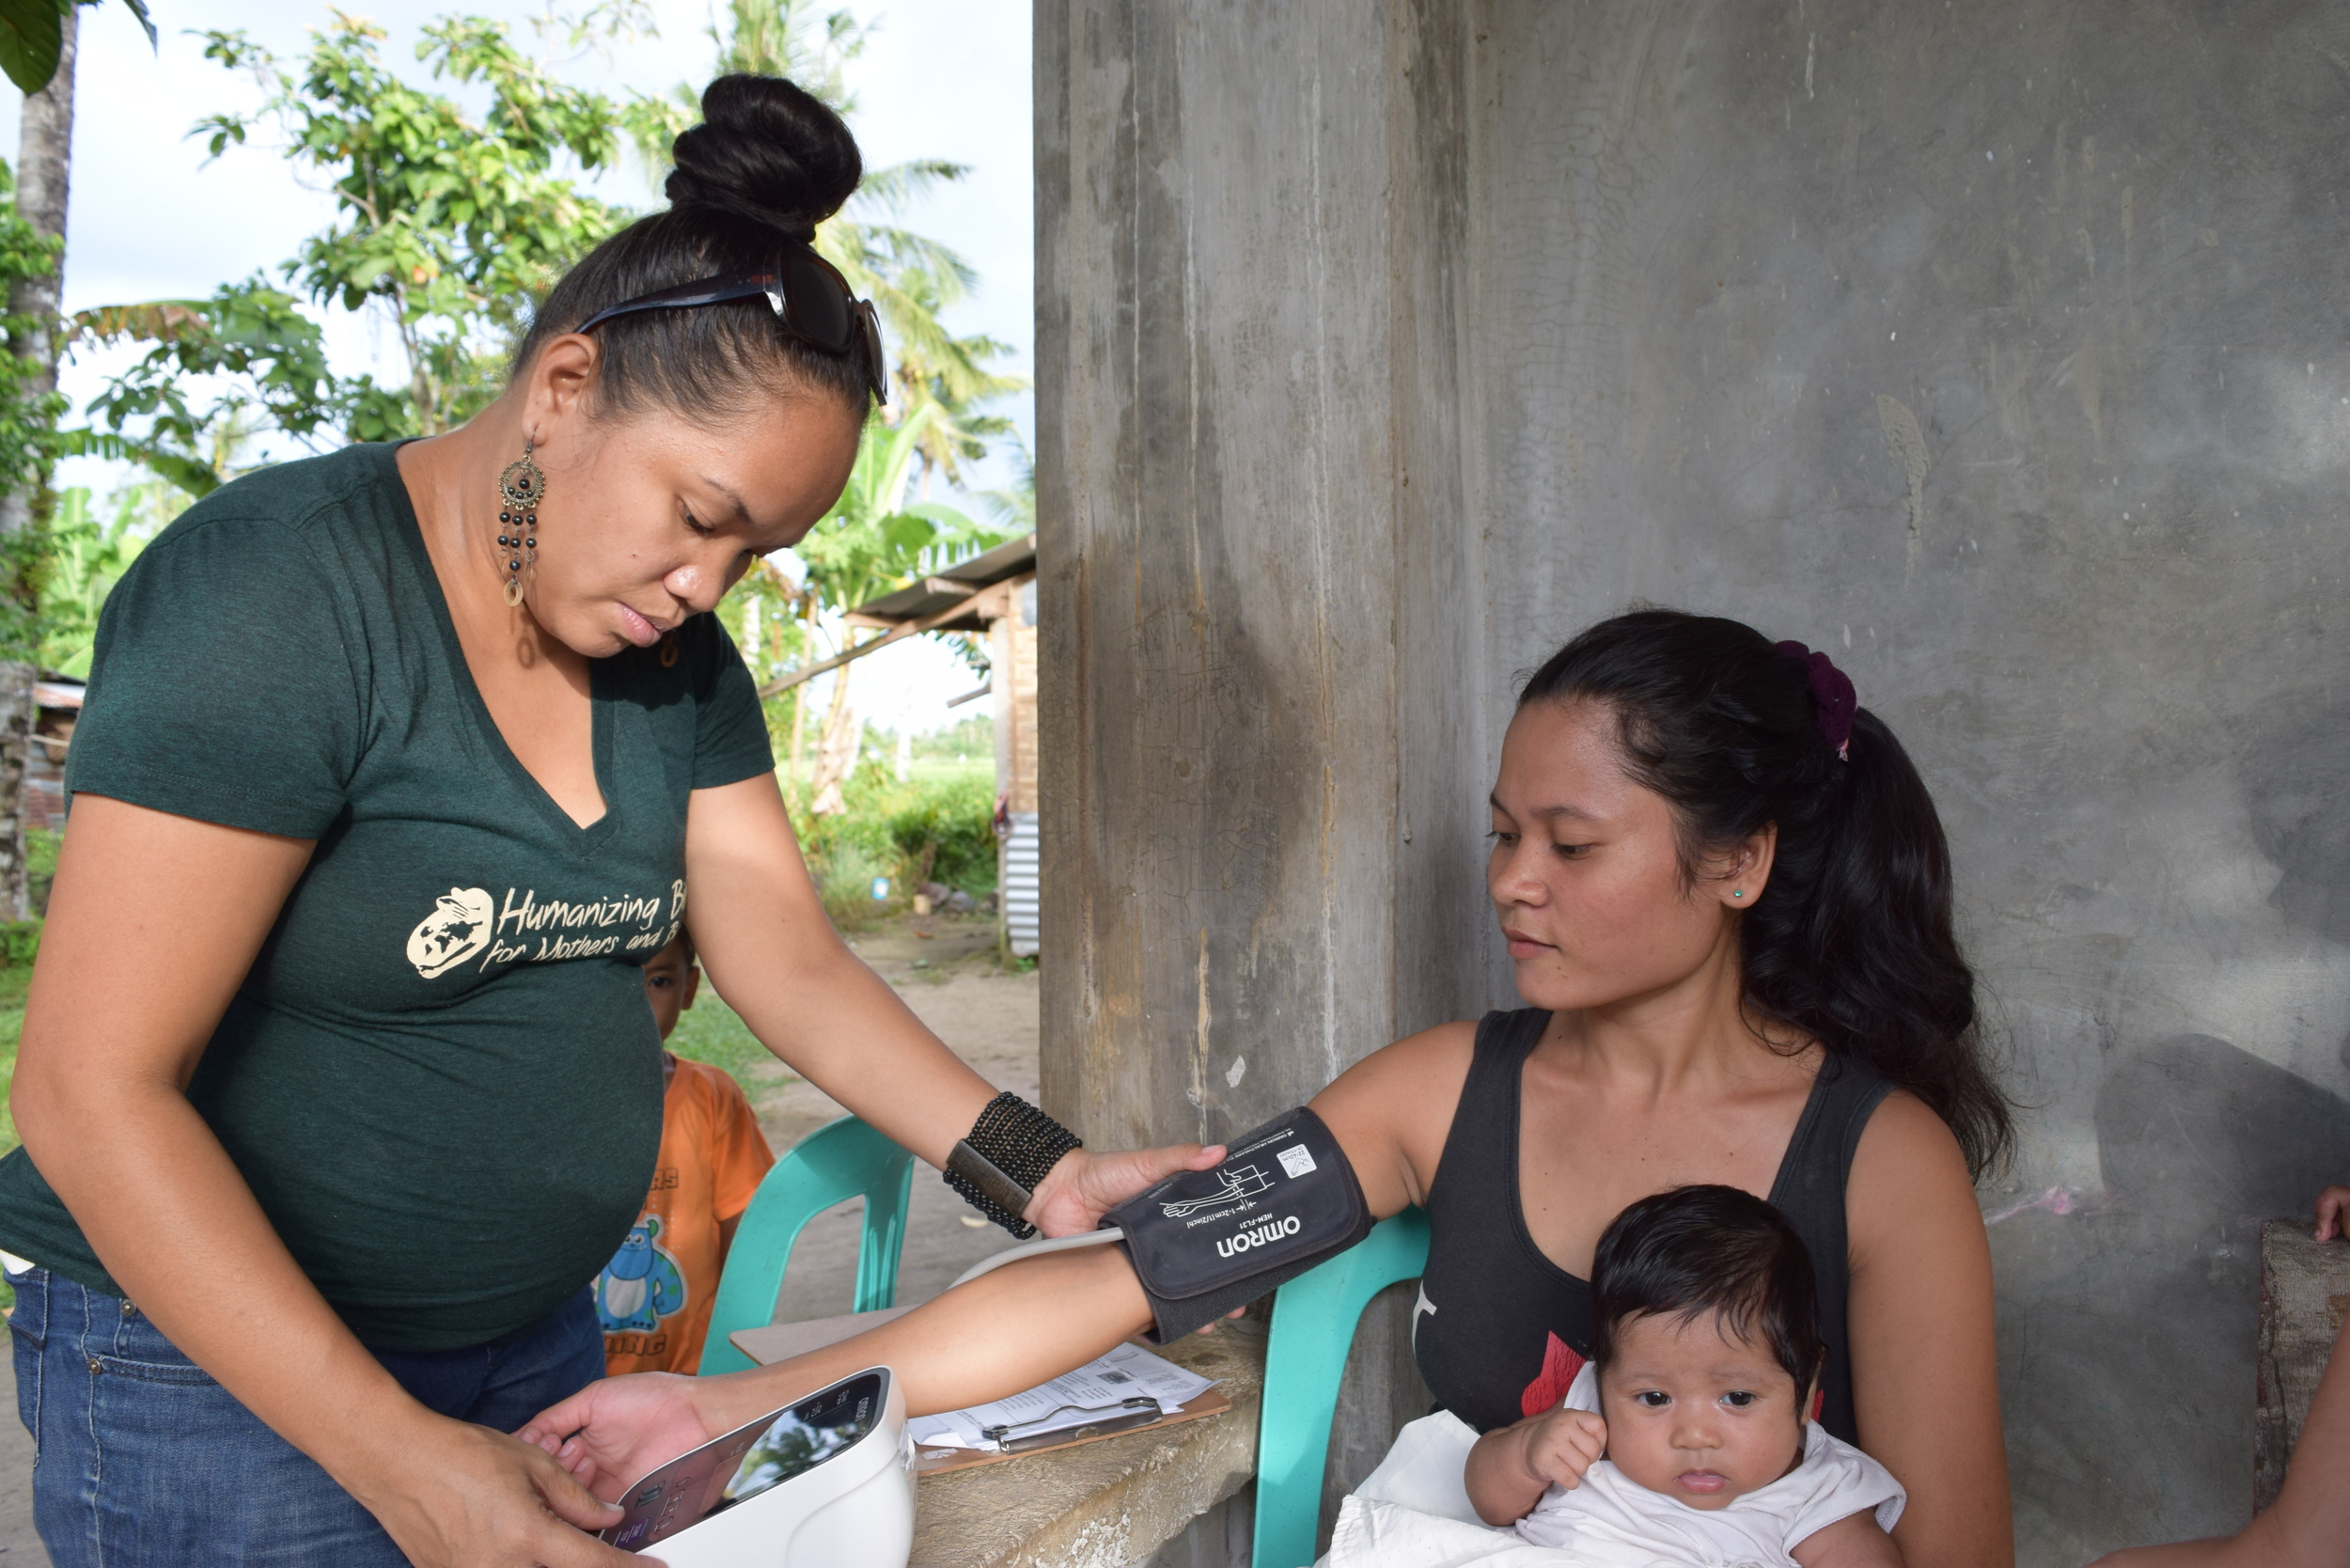 Jackie will work alongside G.O.D. Cooperative Rina Miller who was also given a G.O.D.scholarship through college to become a social worker. Rina now utilizes her advocacy skills for maternal health.